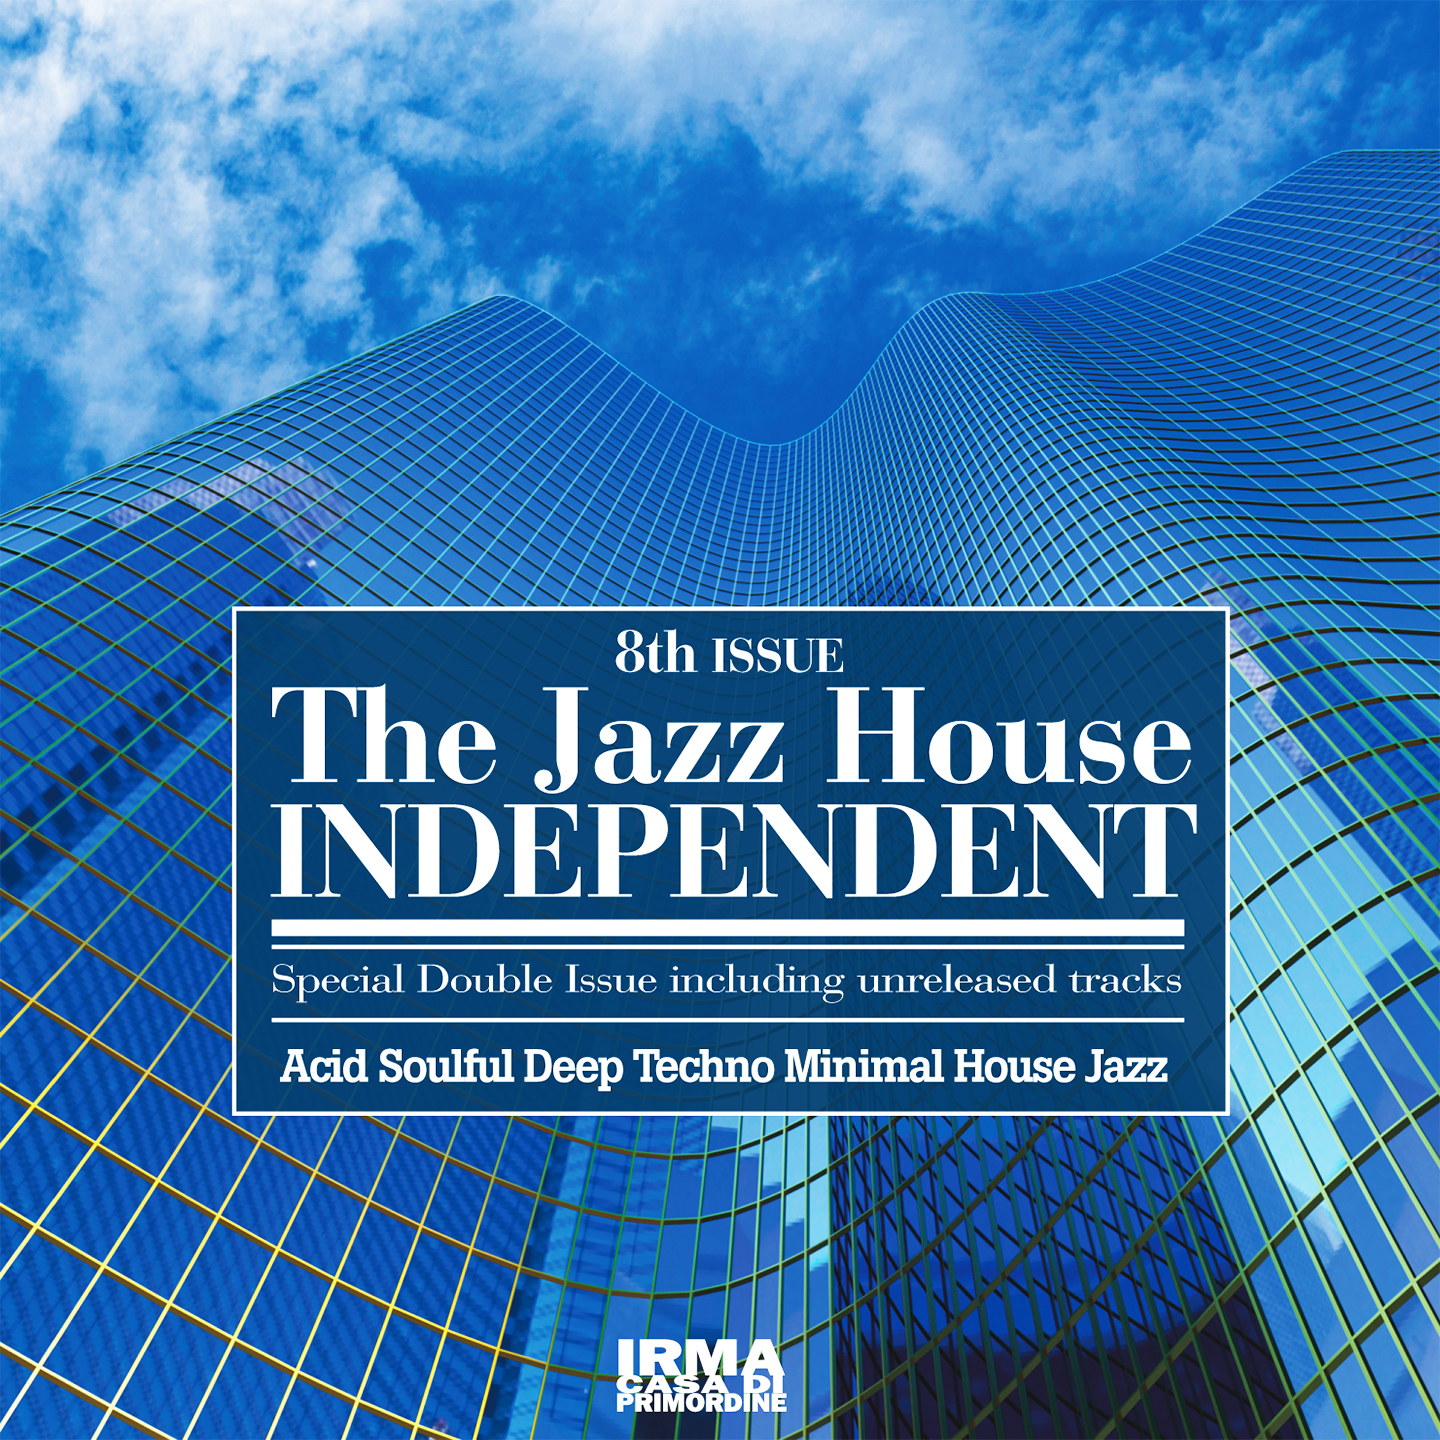 The Jazz House Independent - 8th Issue